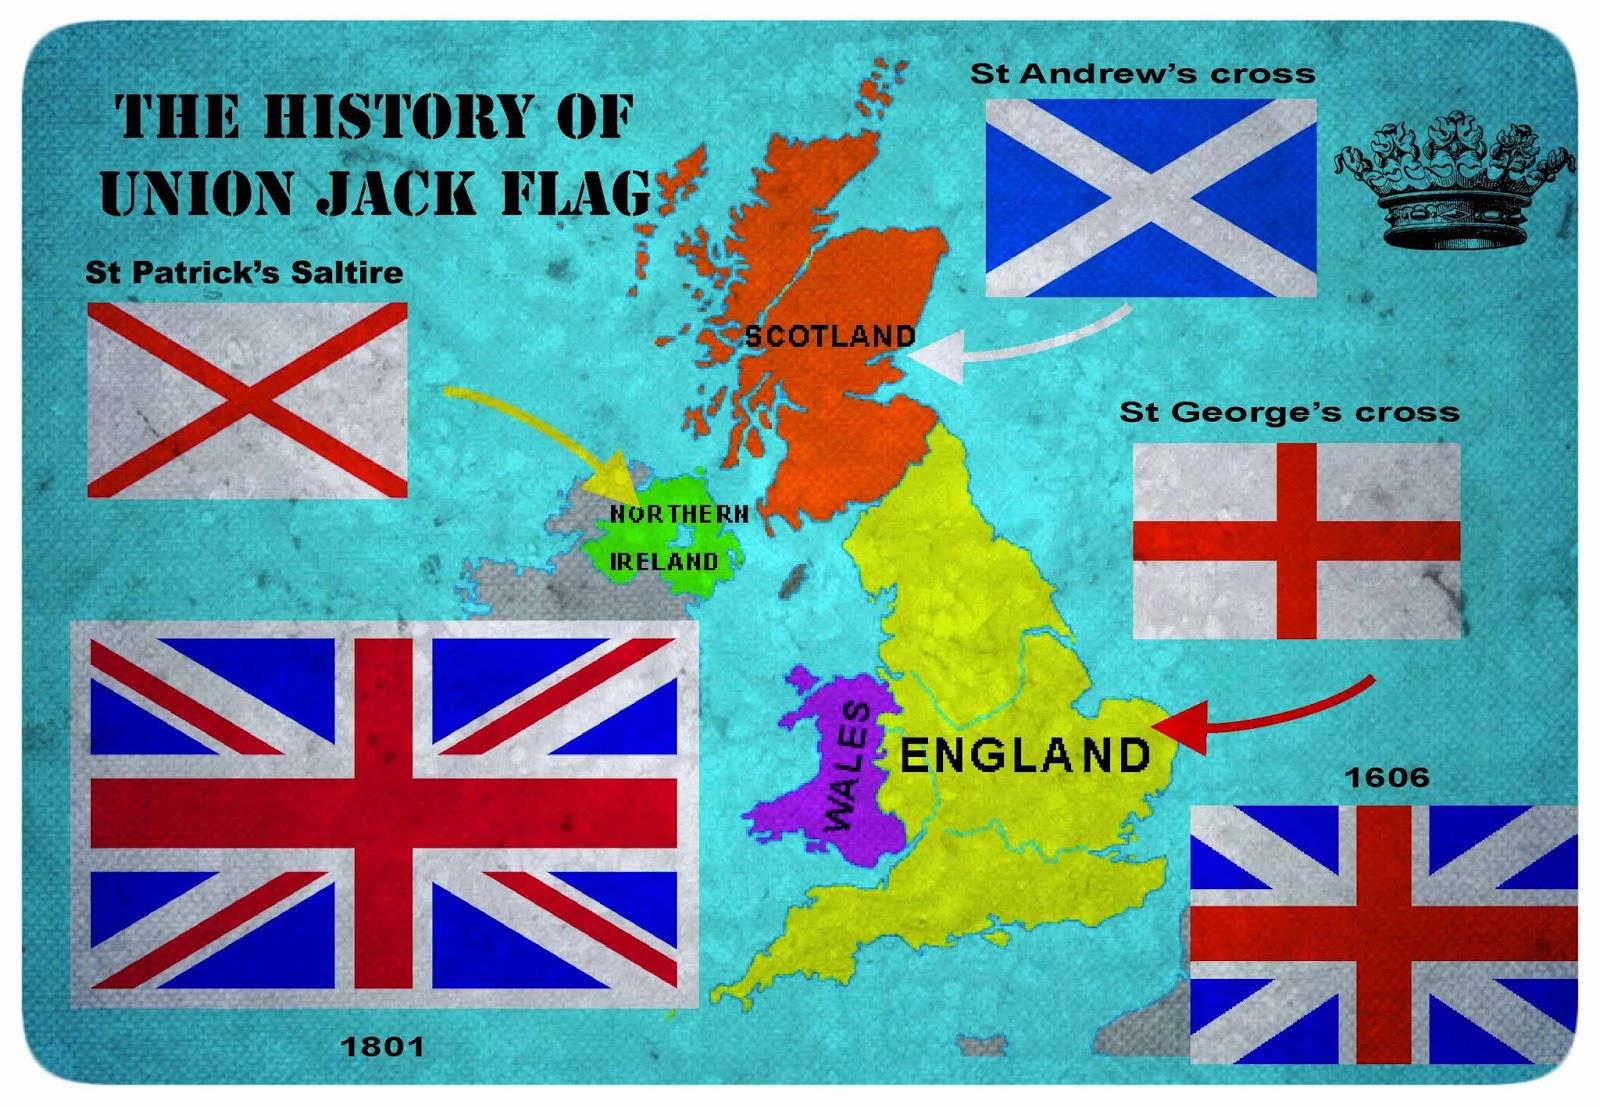 Travelling in the UK: The history of 'Union Jack' flag